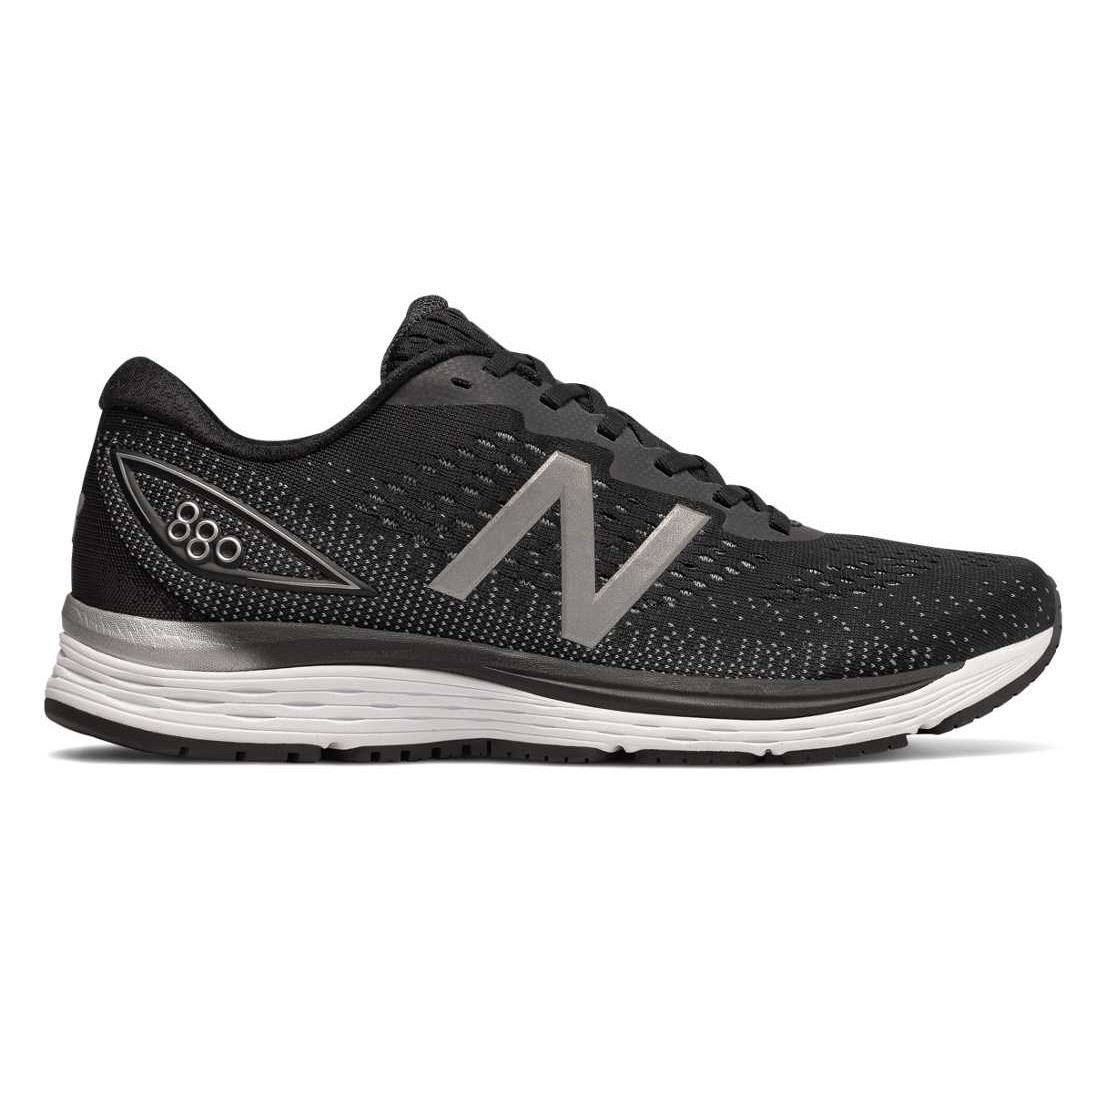 8c71b6825 New Balance 880v9 - Mens Running Shoes